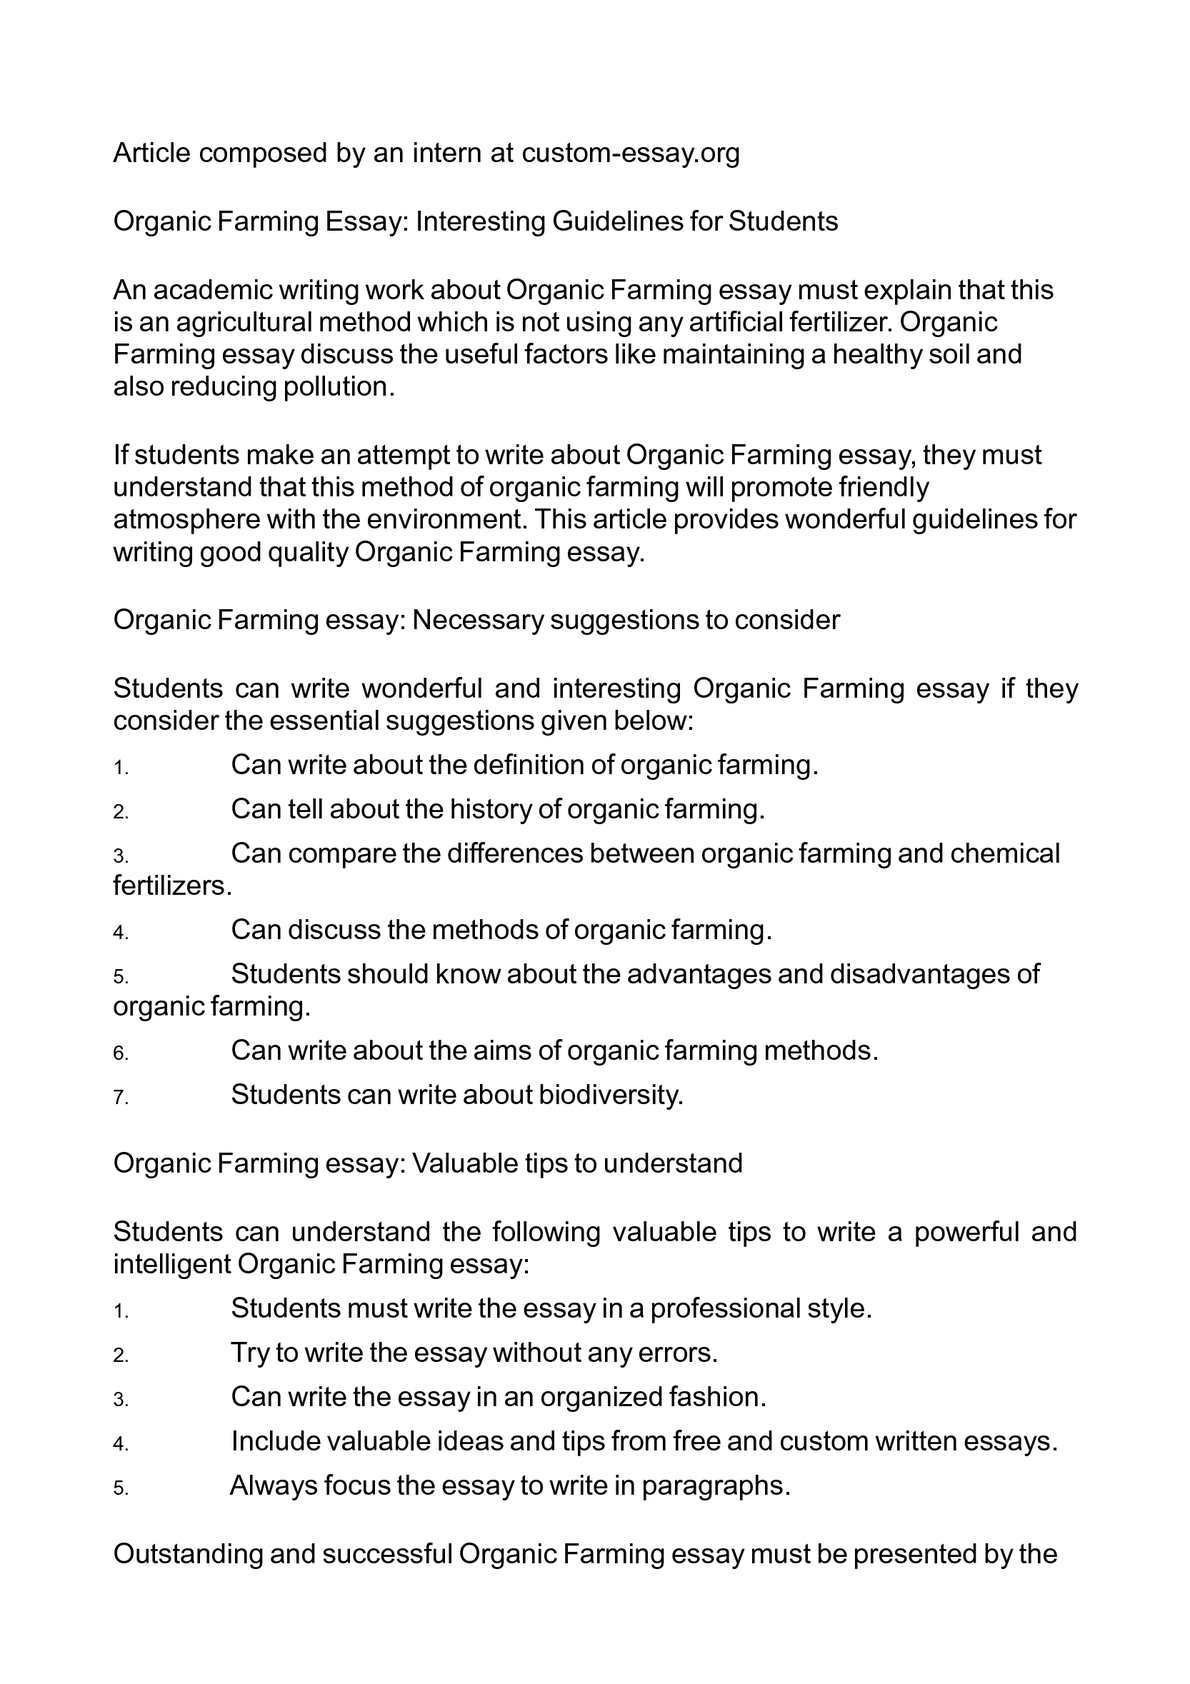 calameo organic farming essay interesting guidelines for students